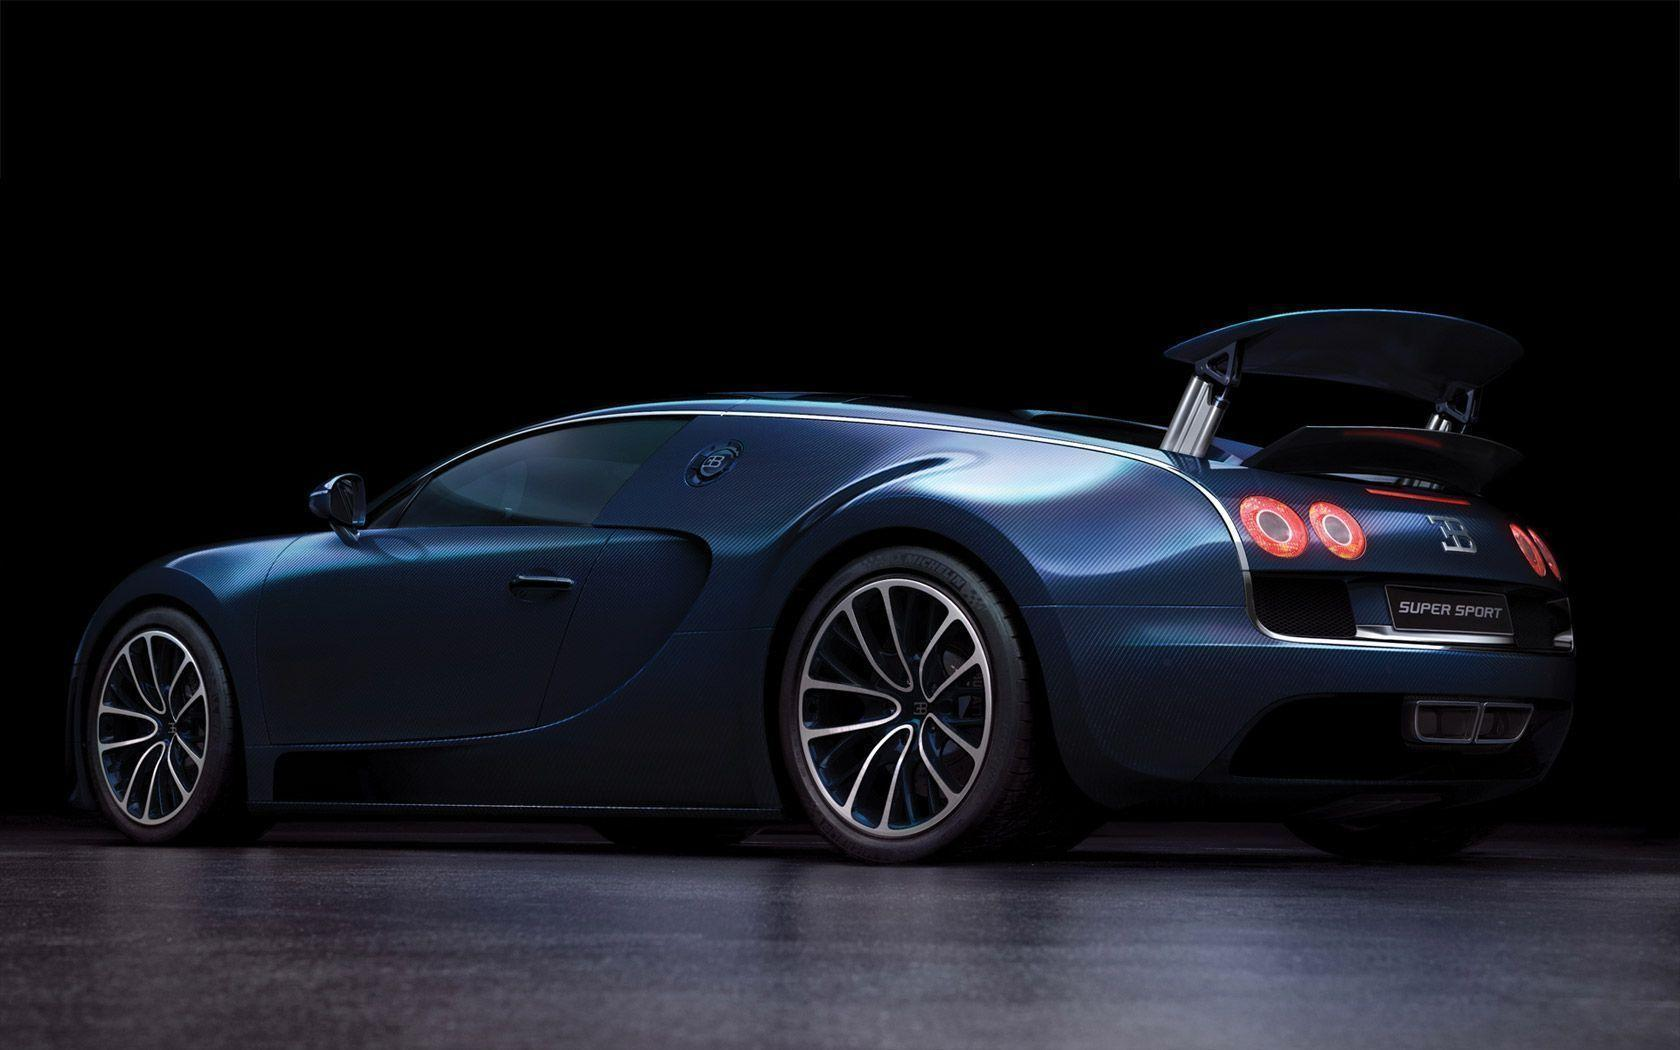 Bugatti Cars Wallpapers 1080p Bugatti Iphone Wallpaper Hd: Bugatti Veyron HD Wallpapers